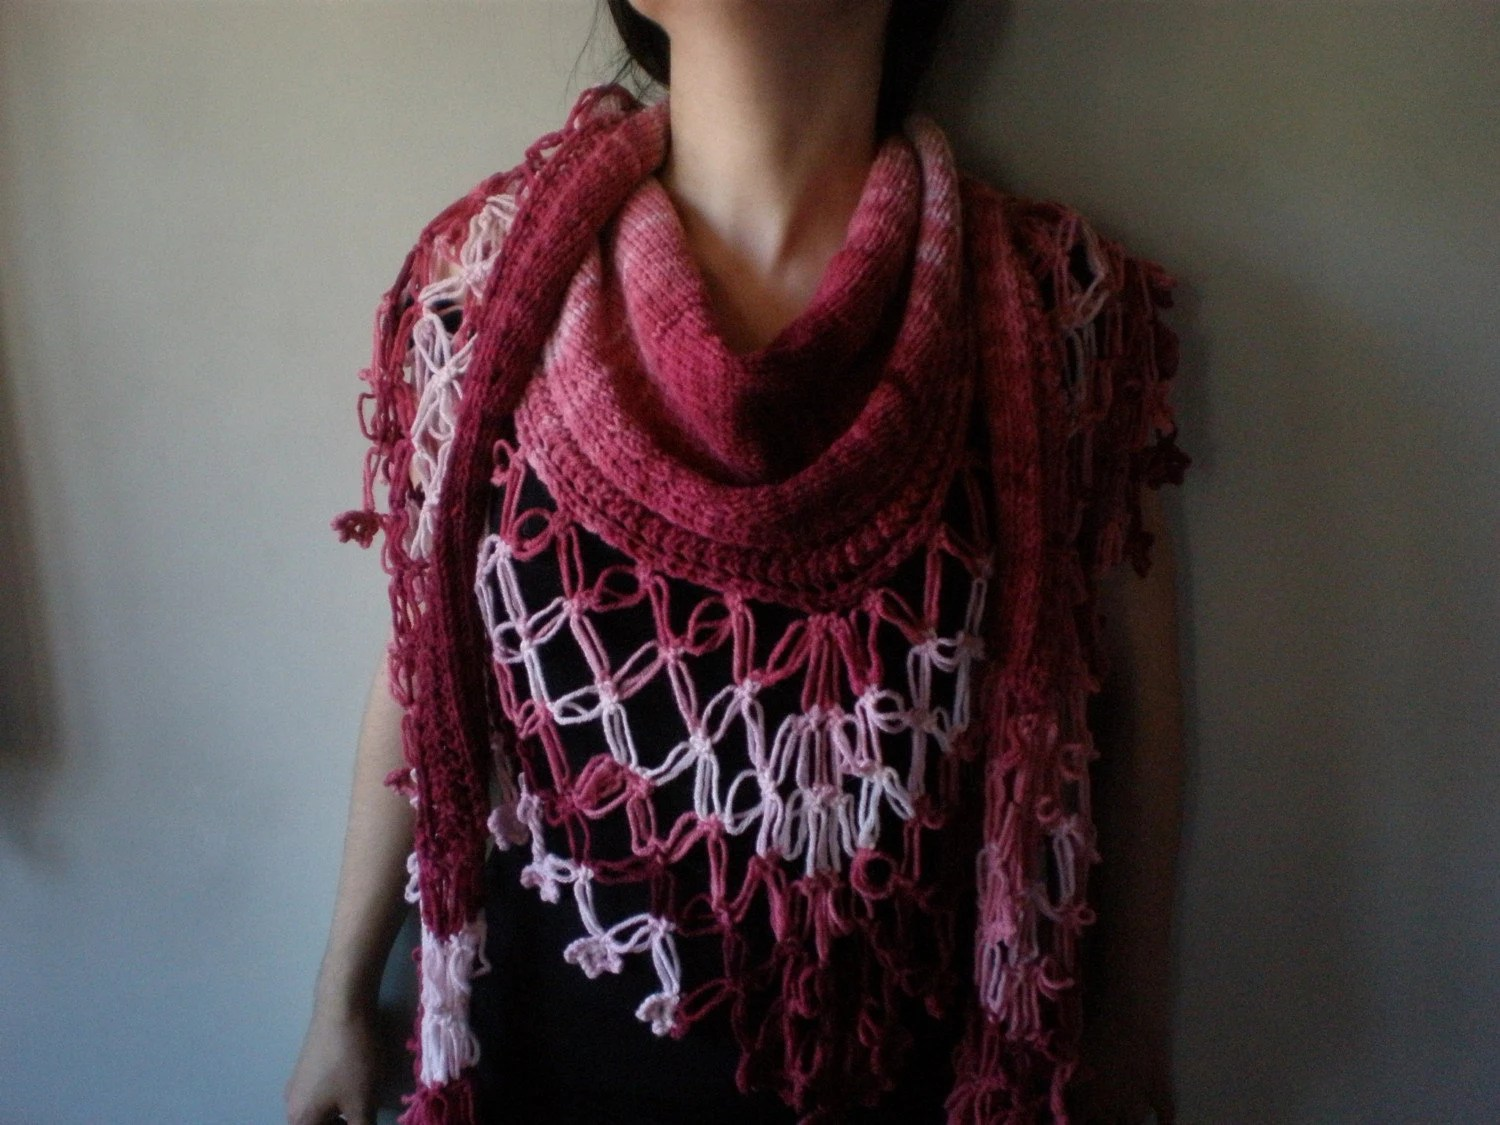 Presence - Cherry ... Knitted / Crocheted Shawl / Scarf